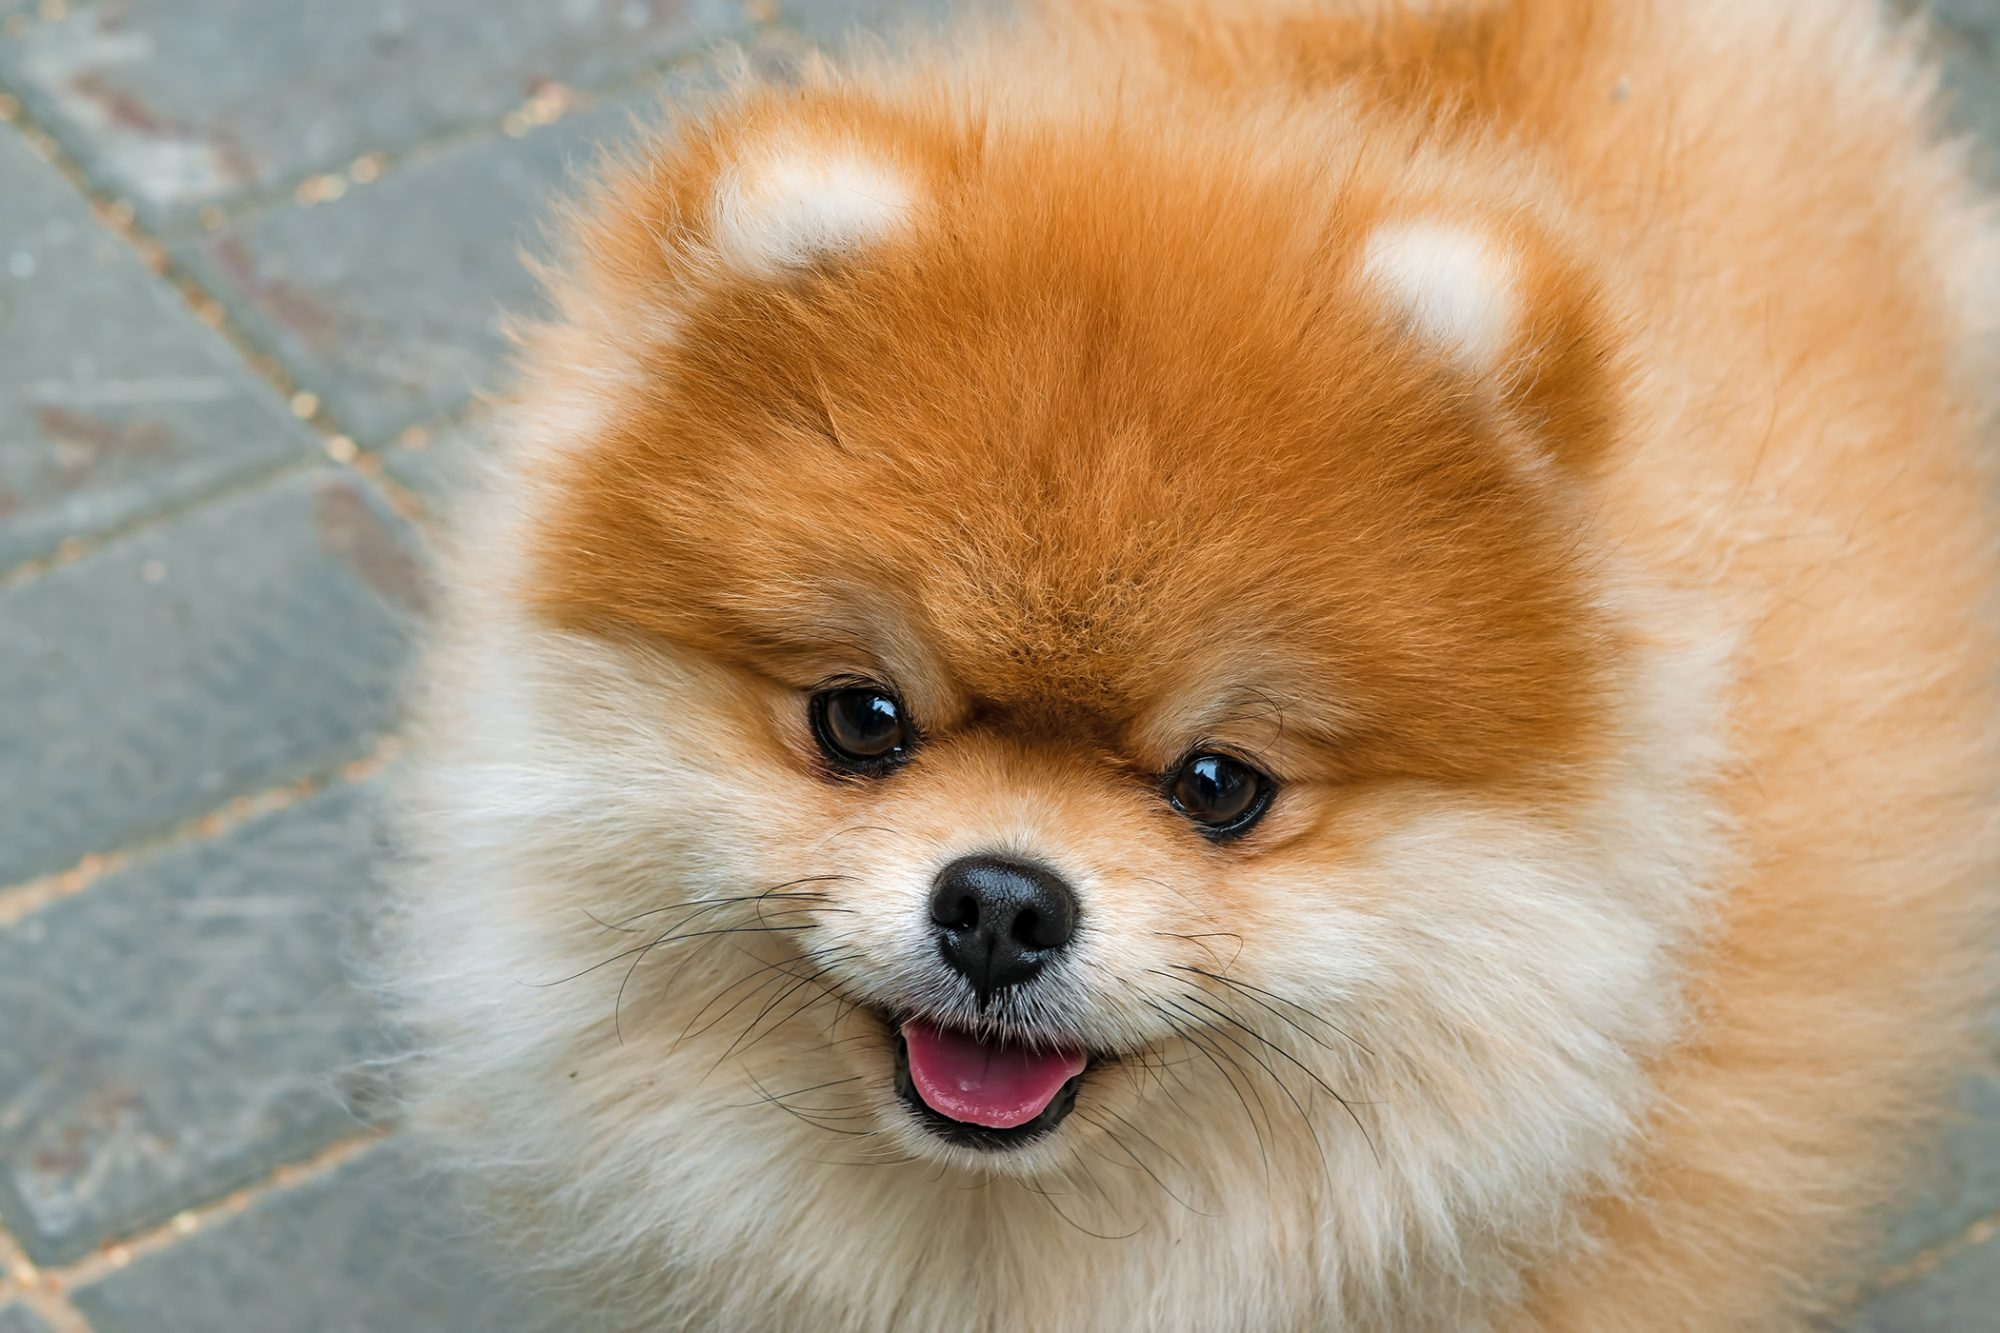 Orange pomeranian smiles in a close up on a grey brick road